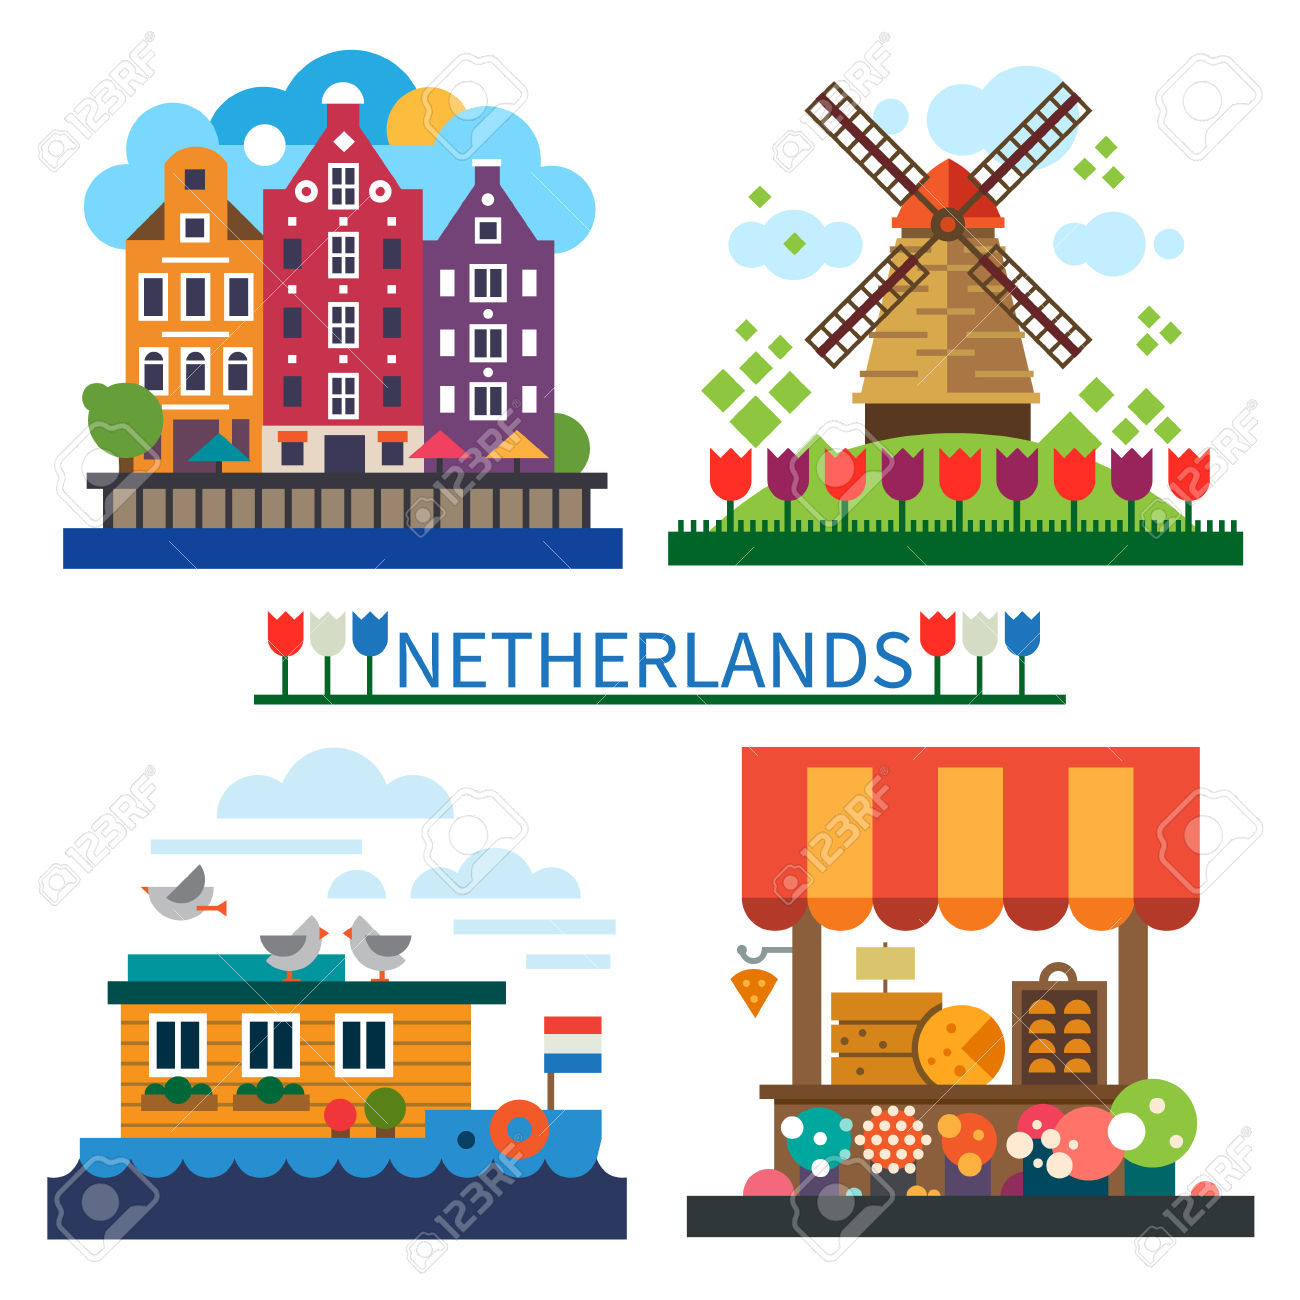 Welcome To Netherlands: Windmill On Field With Tulips Old Houses.